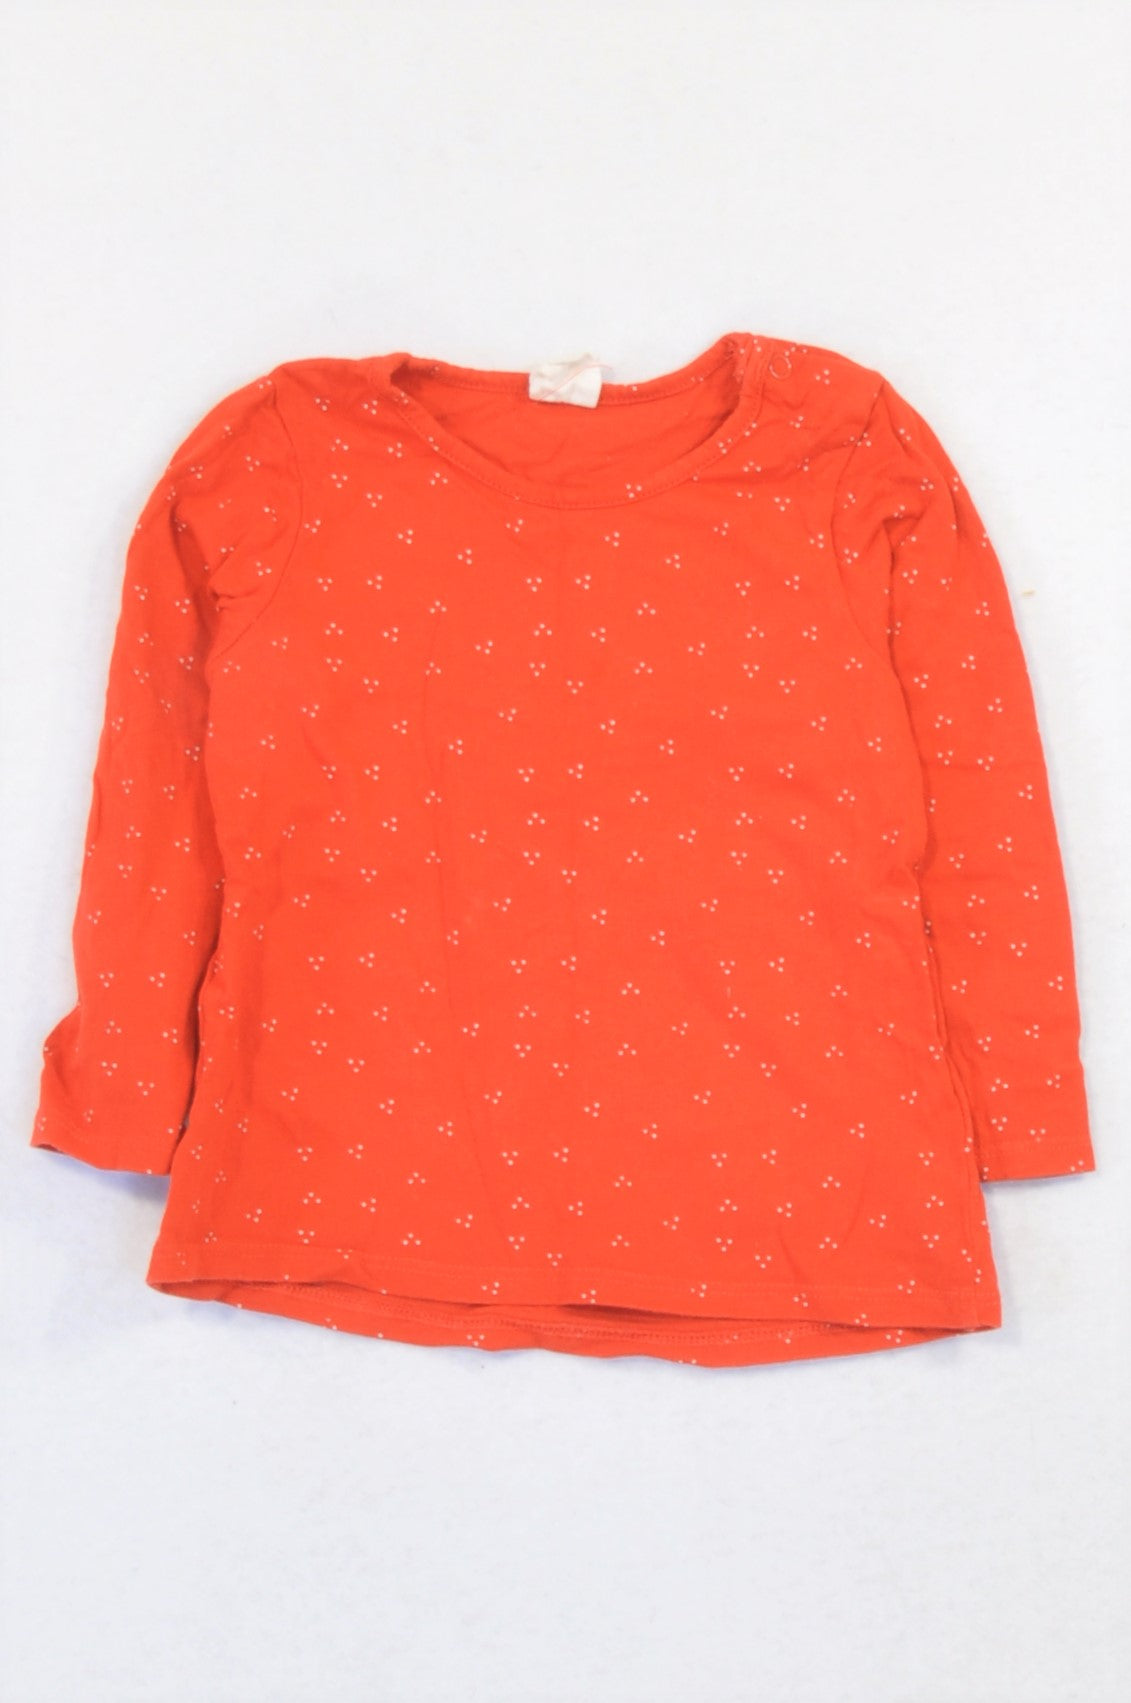 H&M Red Ditsy Dotty T-shirt Girls 9-12 months